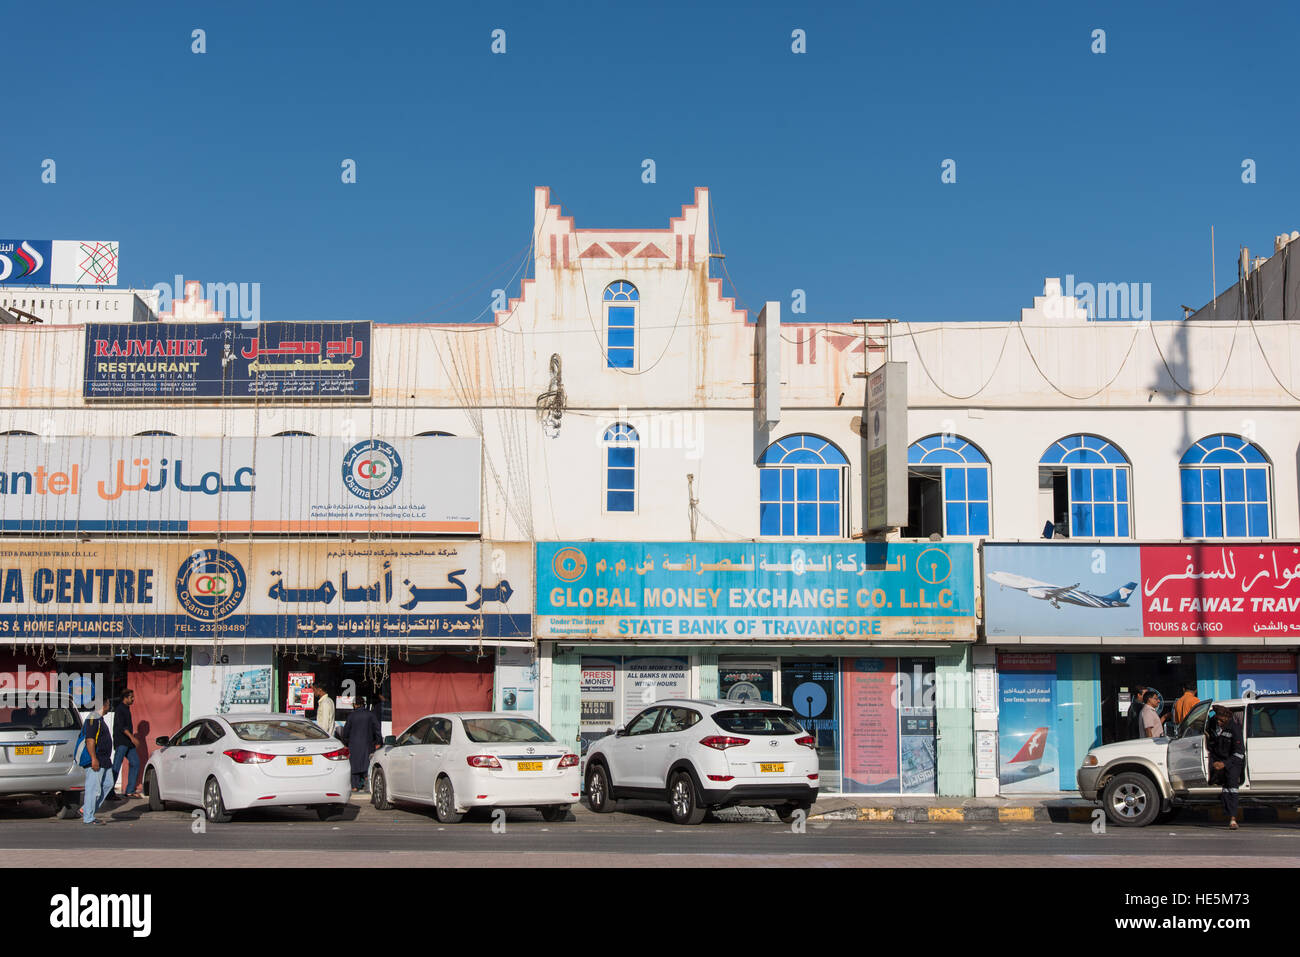 Shophouses with shops etc. in Salalah, Dhofar Region of Oman. - Stock Image